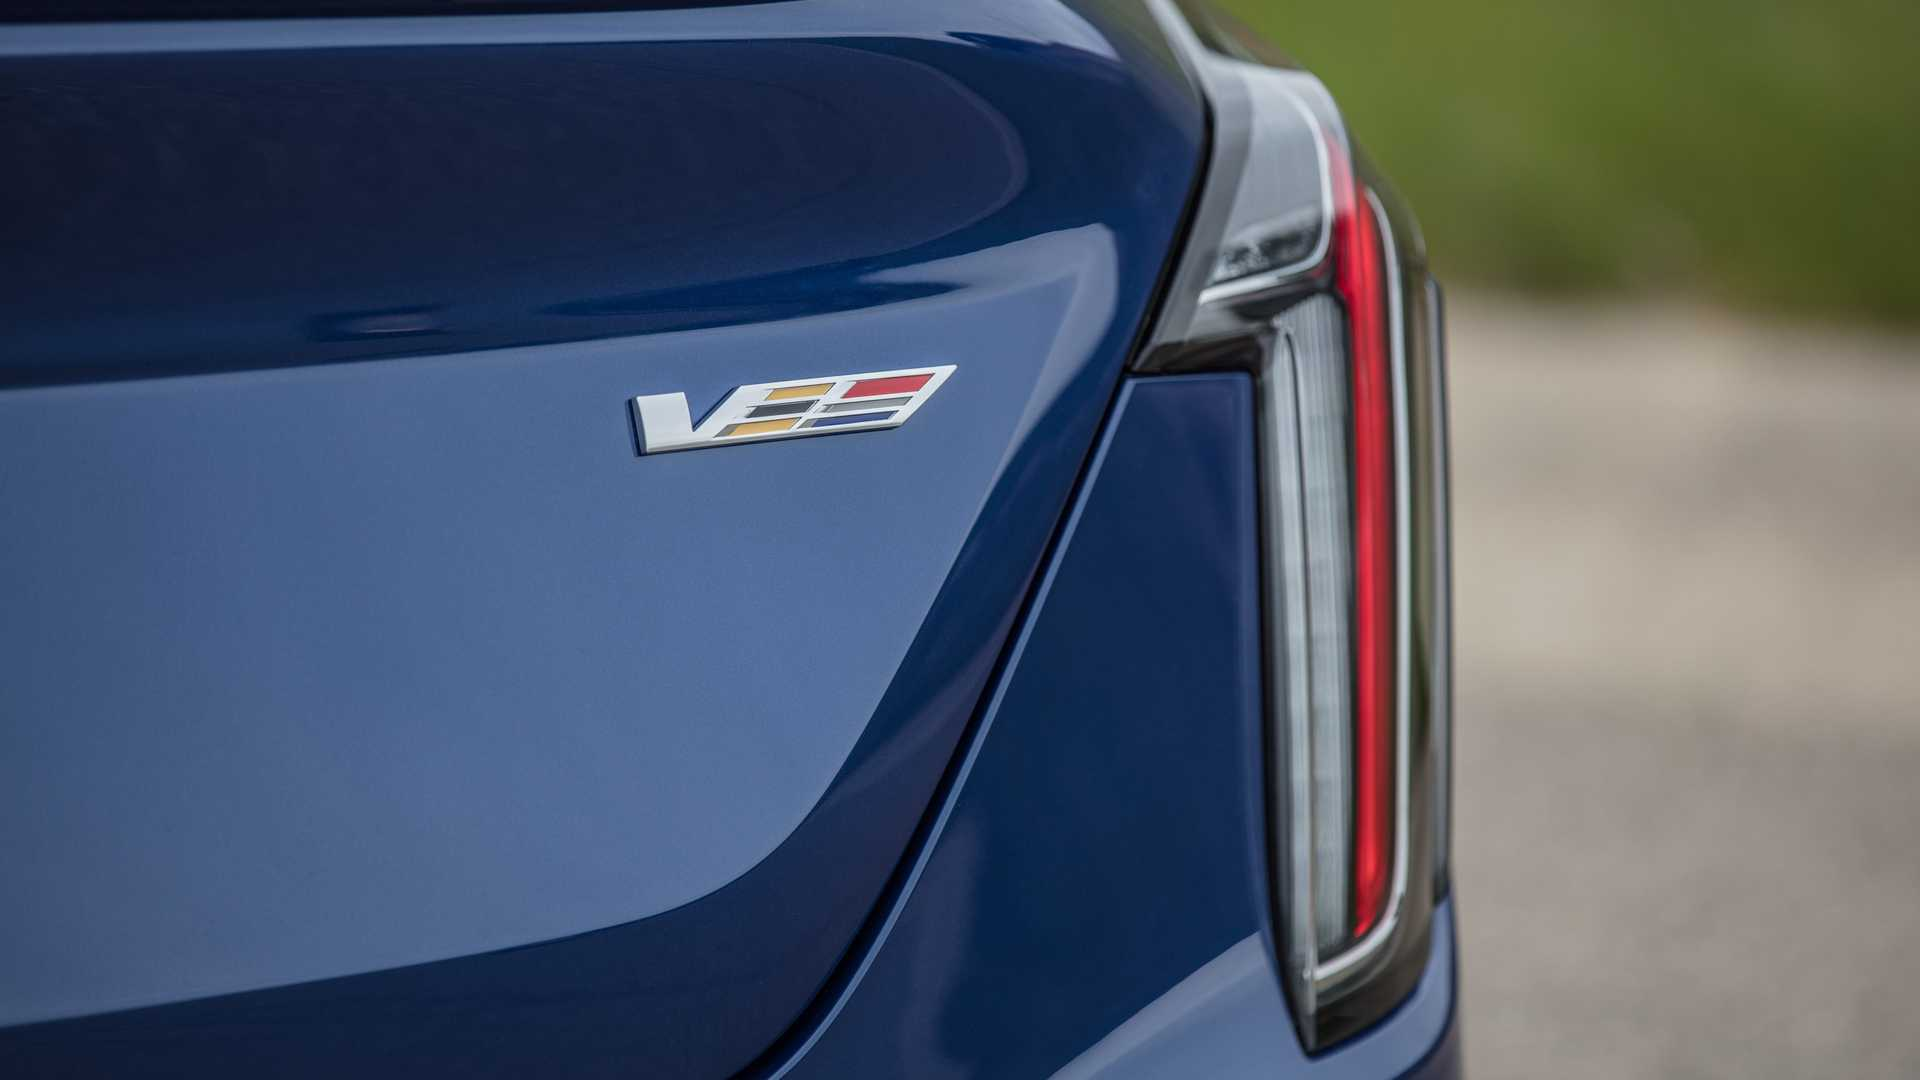 2020 Cadillac CT4-V Tail Light Wallpapers (8)